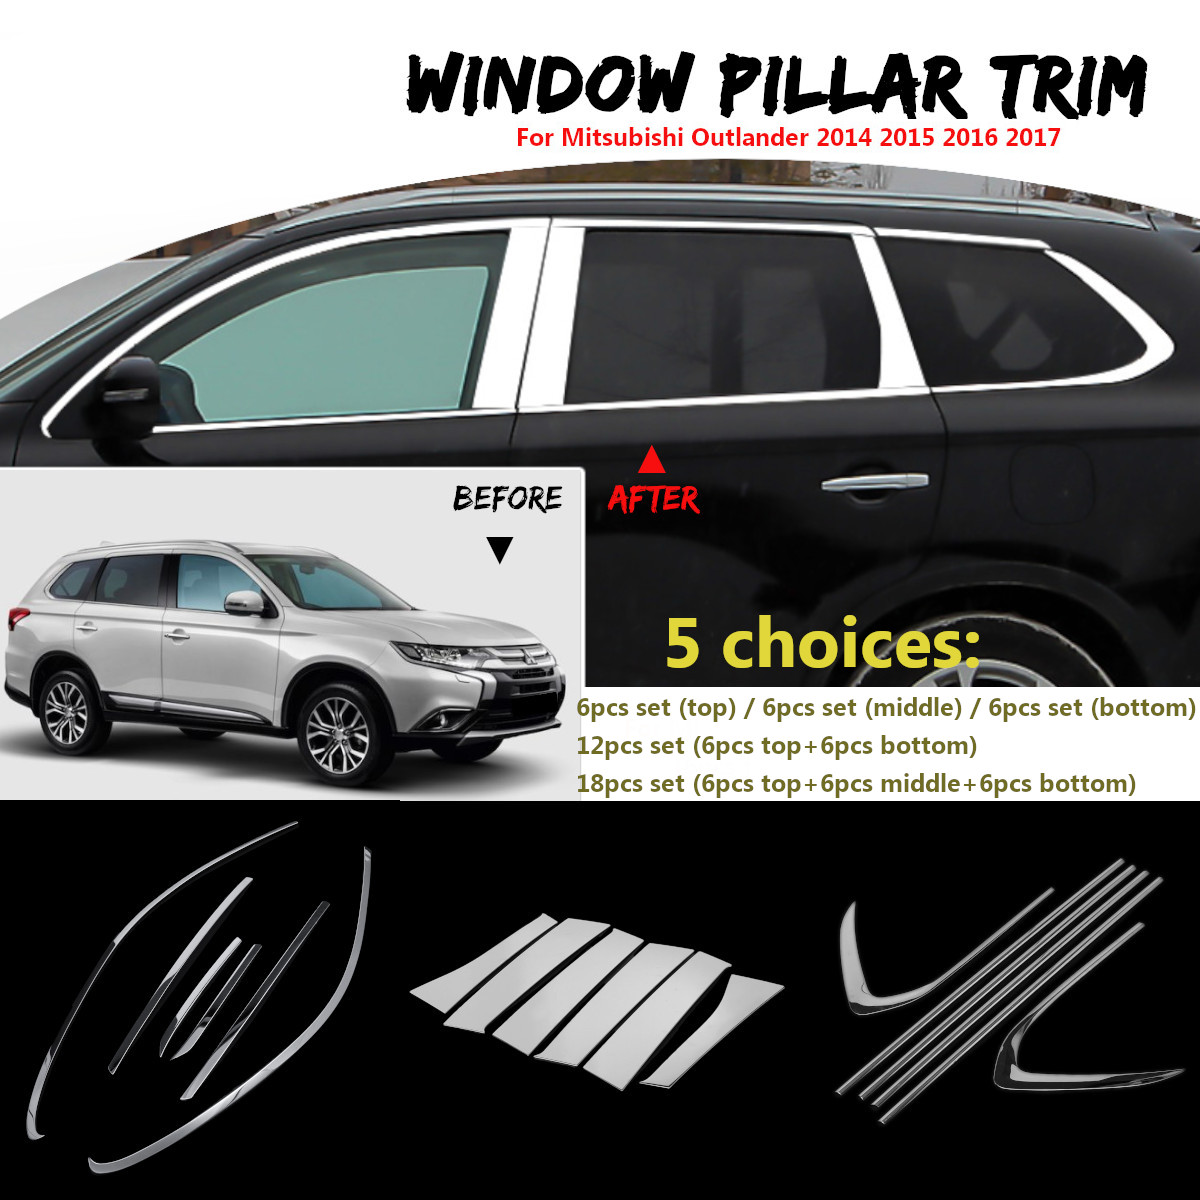 Car Window Pillar Trim Cover Stainless Steel Chrome Decoration for Mitsubishi Outlander 2014 2015 2016 2017 Car Styling car styling interior speaker audio ring cover decoration trim for mitsubishi asx outlander sport us 2013 2014 2015 2016 page 8